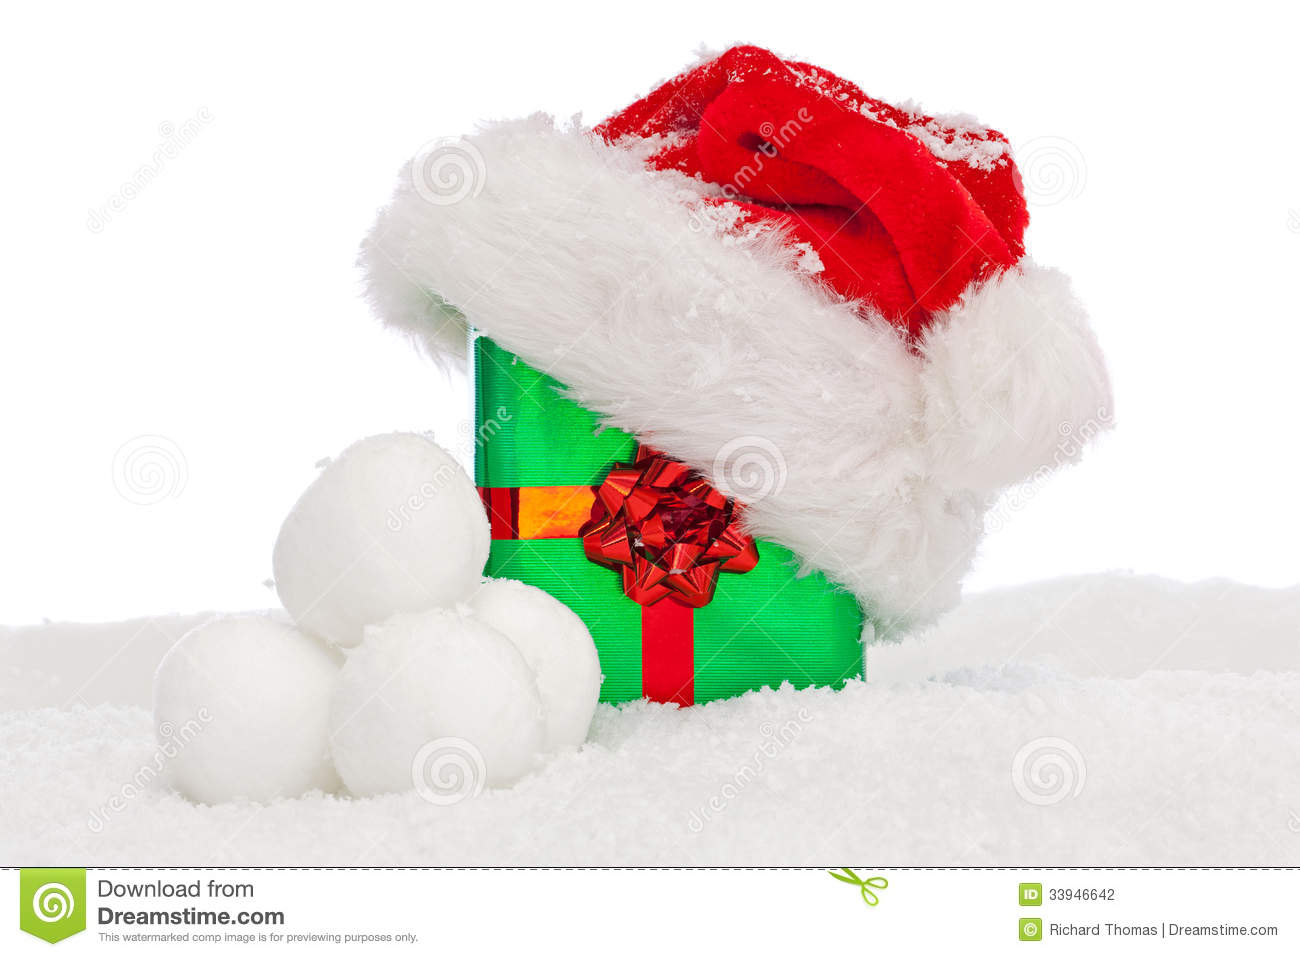 Santa Hat On Christmas Present Covered In Snow. Stock Photo - Image ...